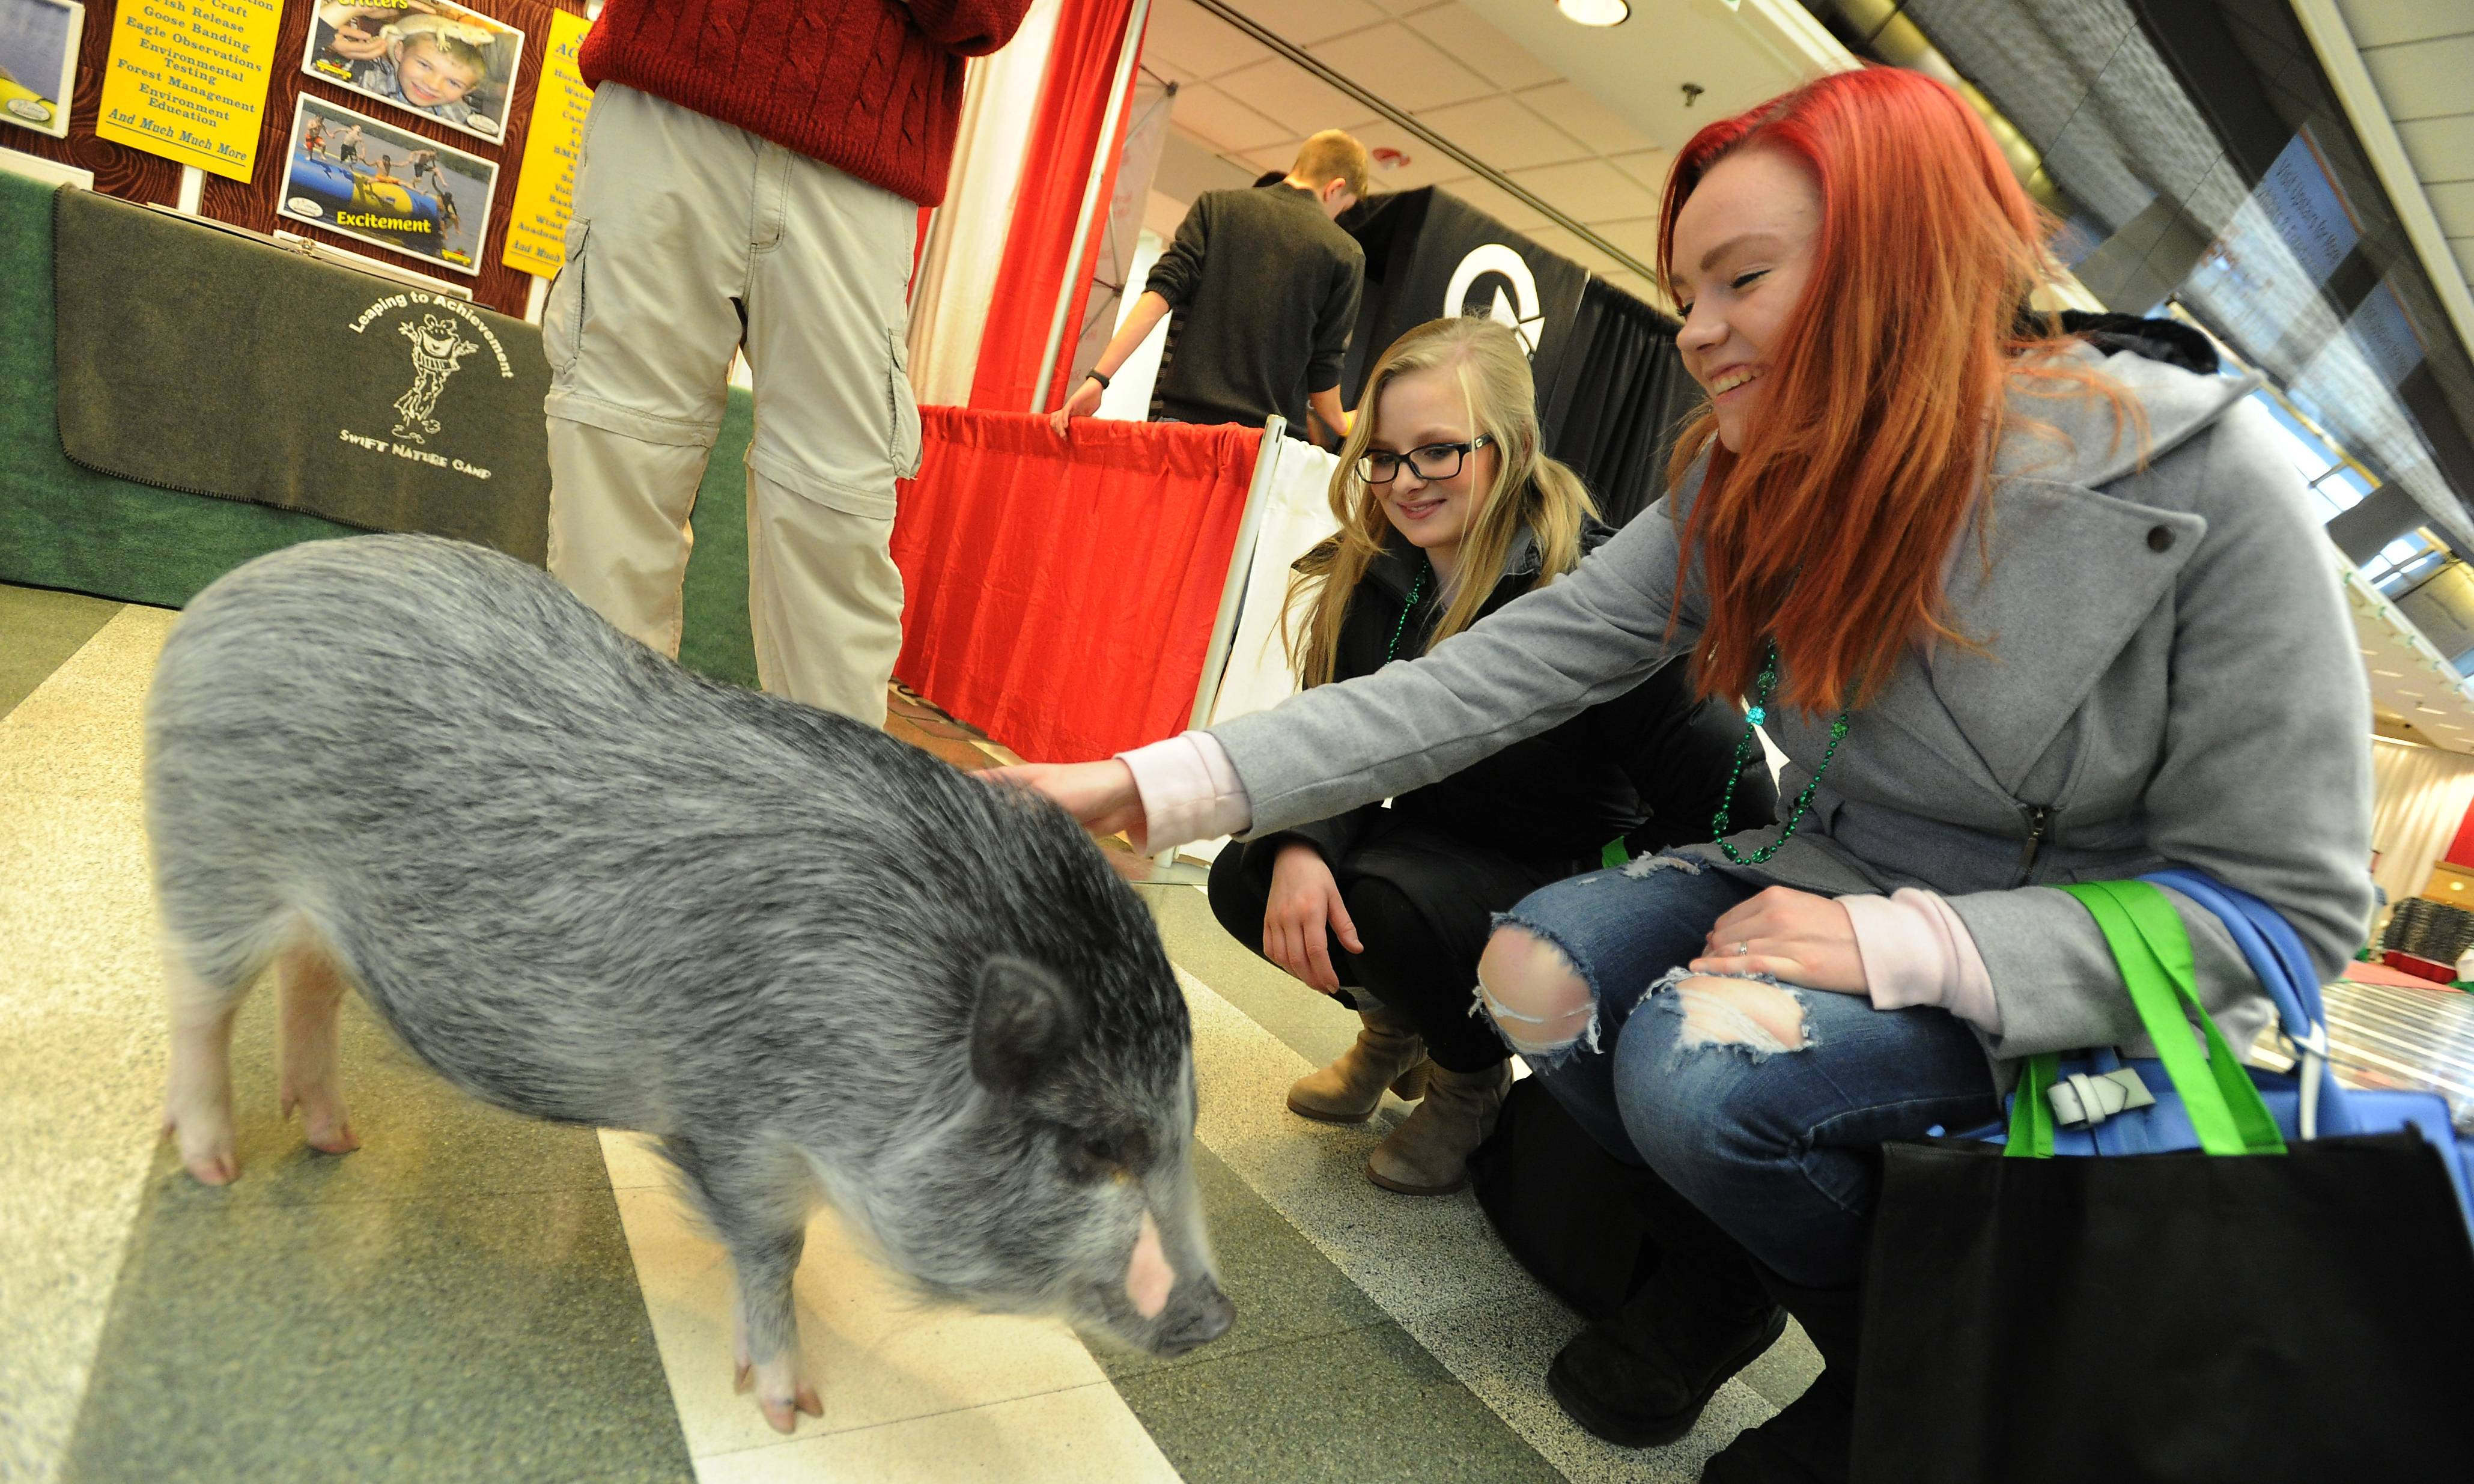 Bubba the Juliana pig greets Samantha Bliss, 18, of Woodstock and her friend Danielle Barnewolt, 19, of Huntley on Friday at the 25th annual Chicagoland Family Pet Expo at Arlington Park.